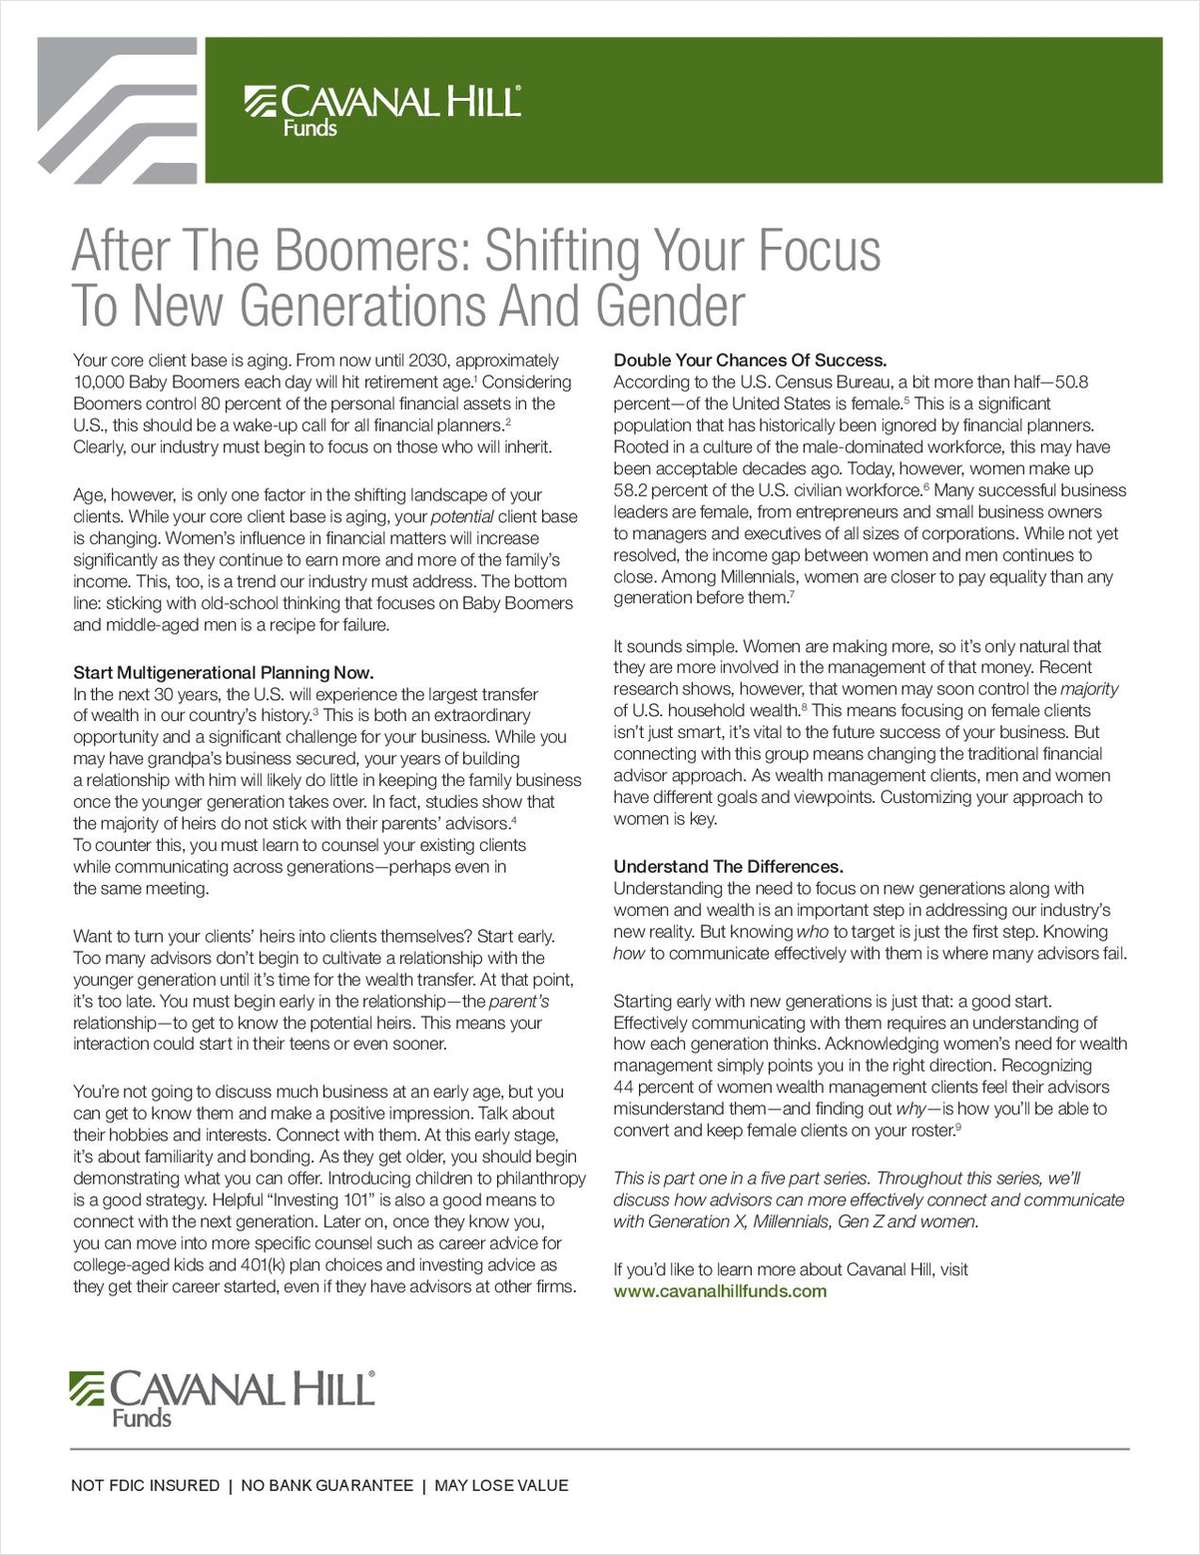 After The Boomers: Shifting Your Focus to New Generations and Gender